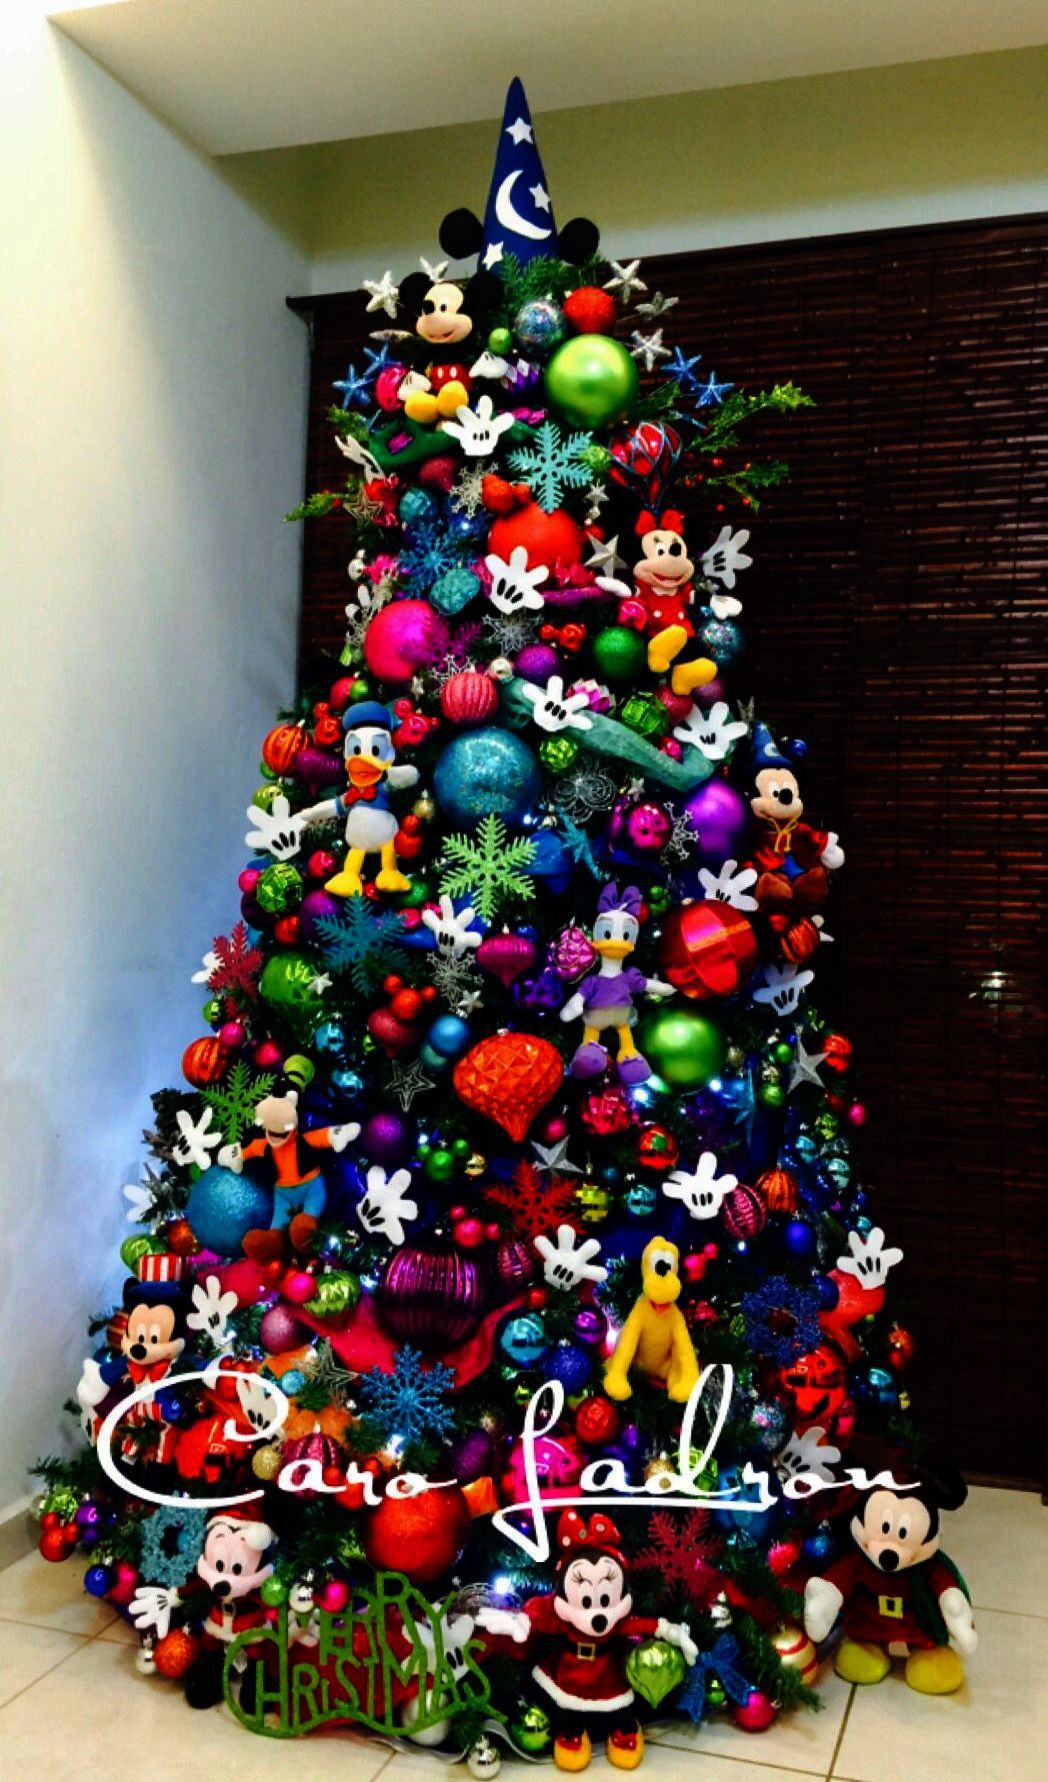 Christmas Tree Skirt Walmart Than Black Box Christmas Tree Review Mickey Mouse Christmas Tree Disney Christmas Decorations Christmas Tree Themes